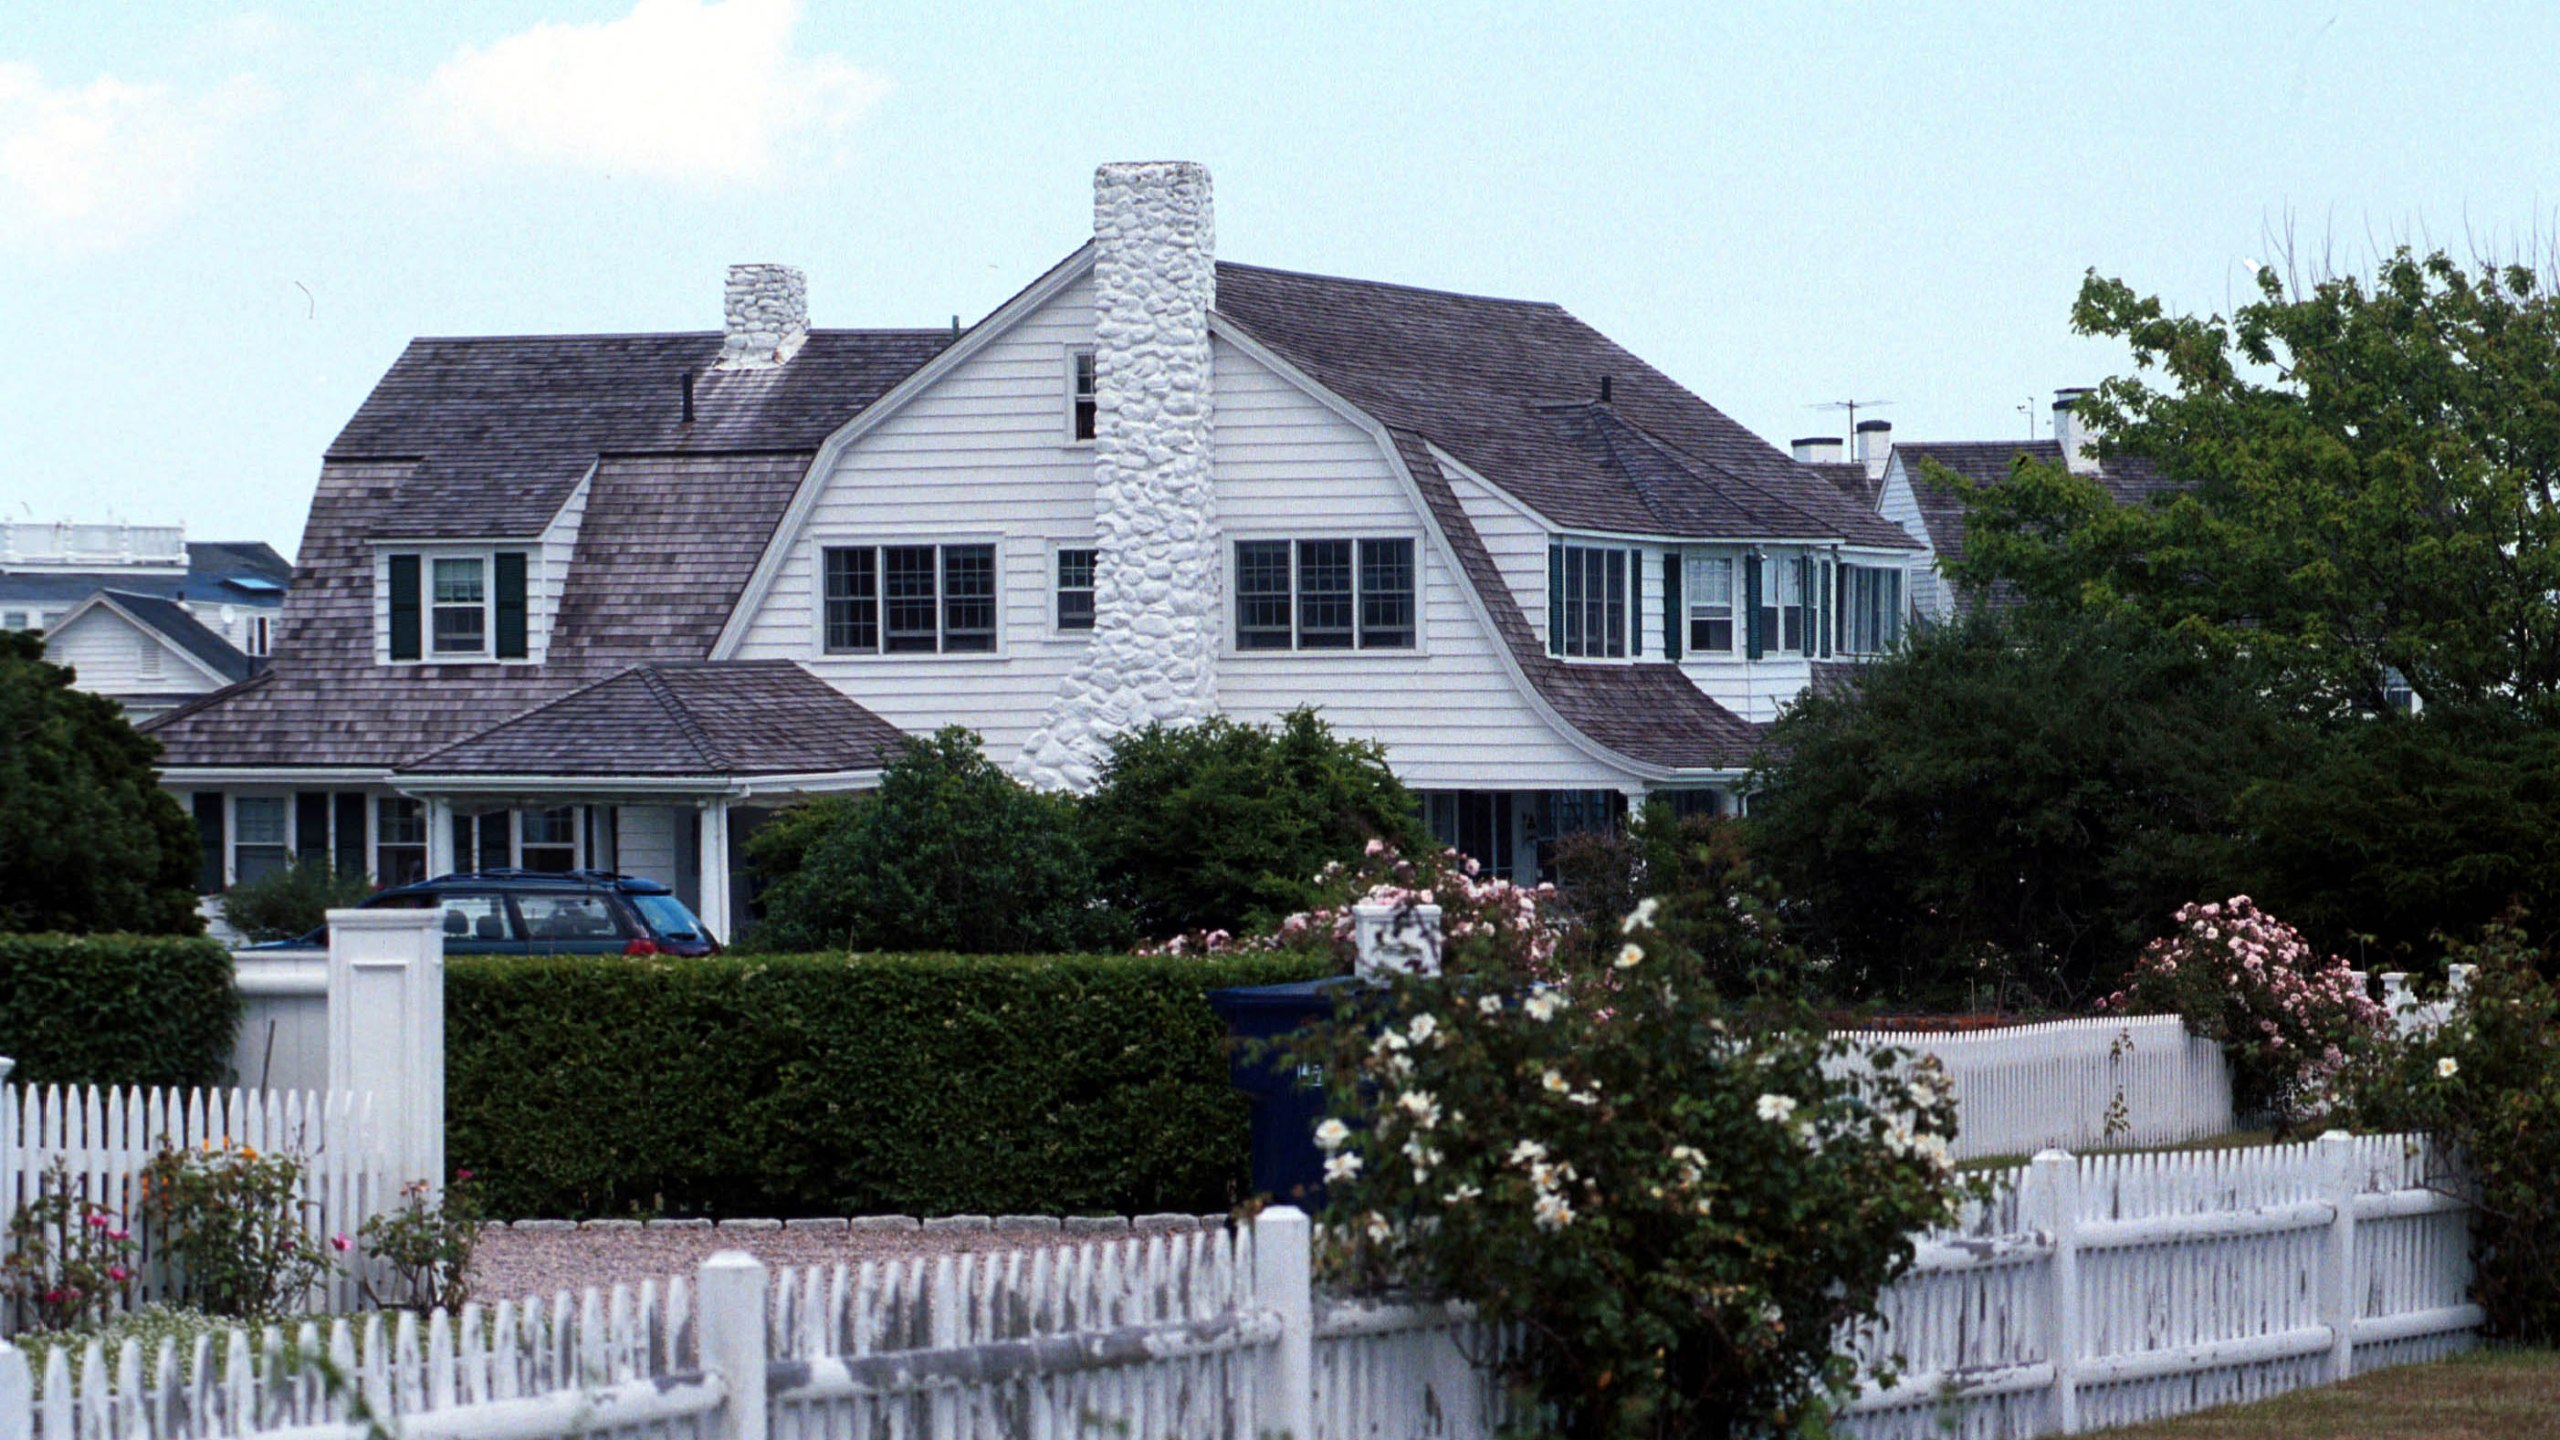 The Kennedy family compound in DescriptionHyannis Port, Massachusetts, is seen on July 6, 2000. (Credit: Darren McCollester / Newsmakers via Getty Images)